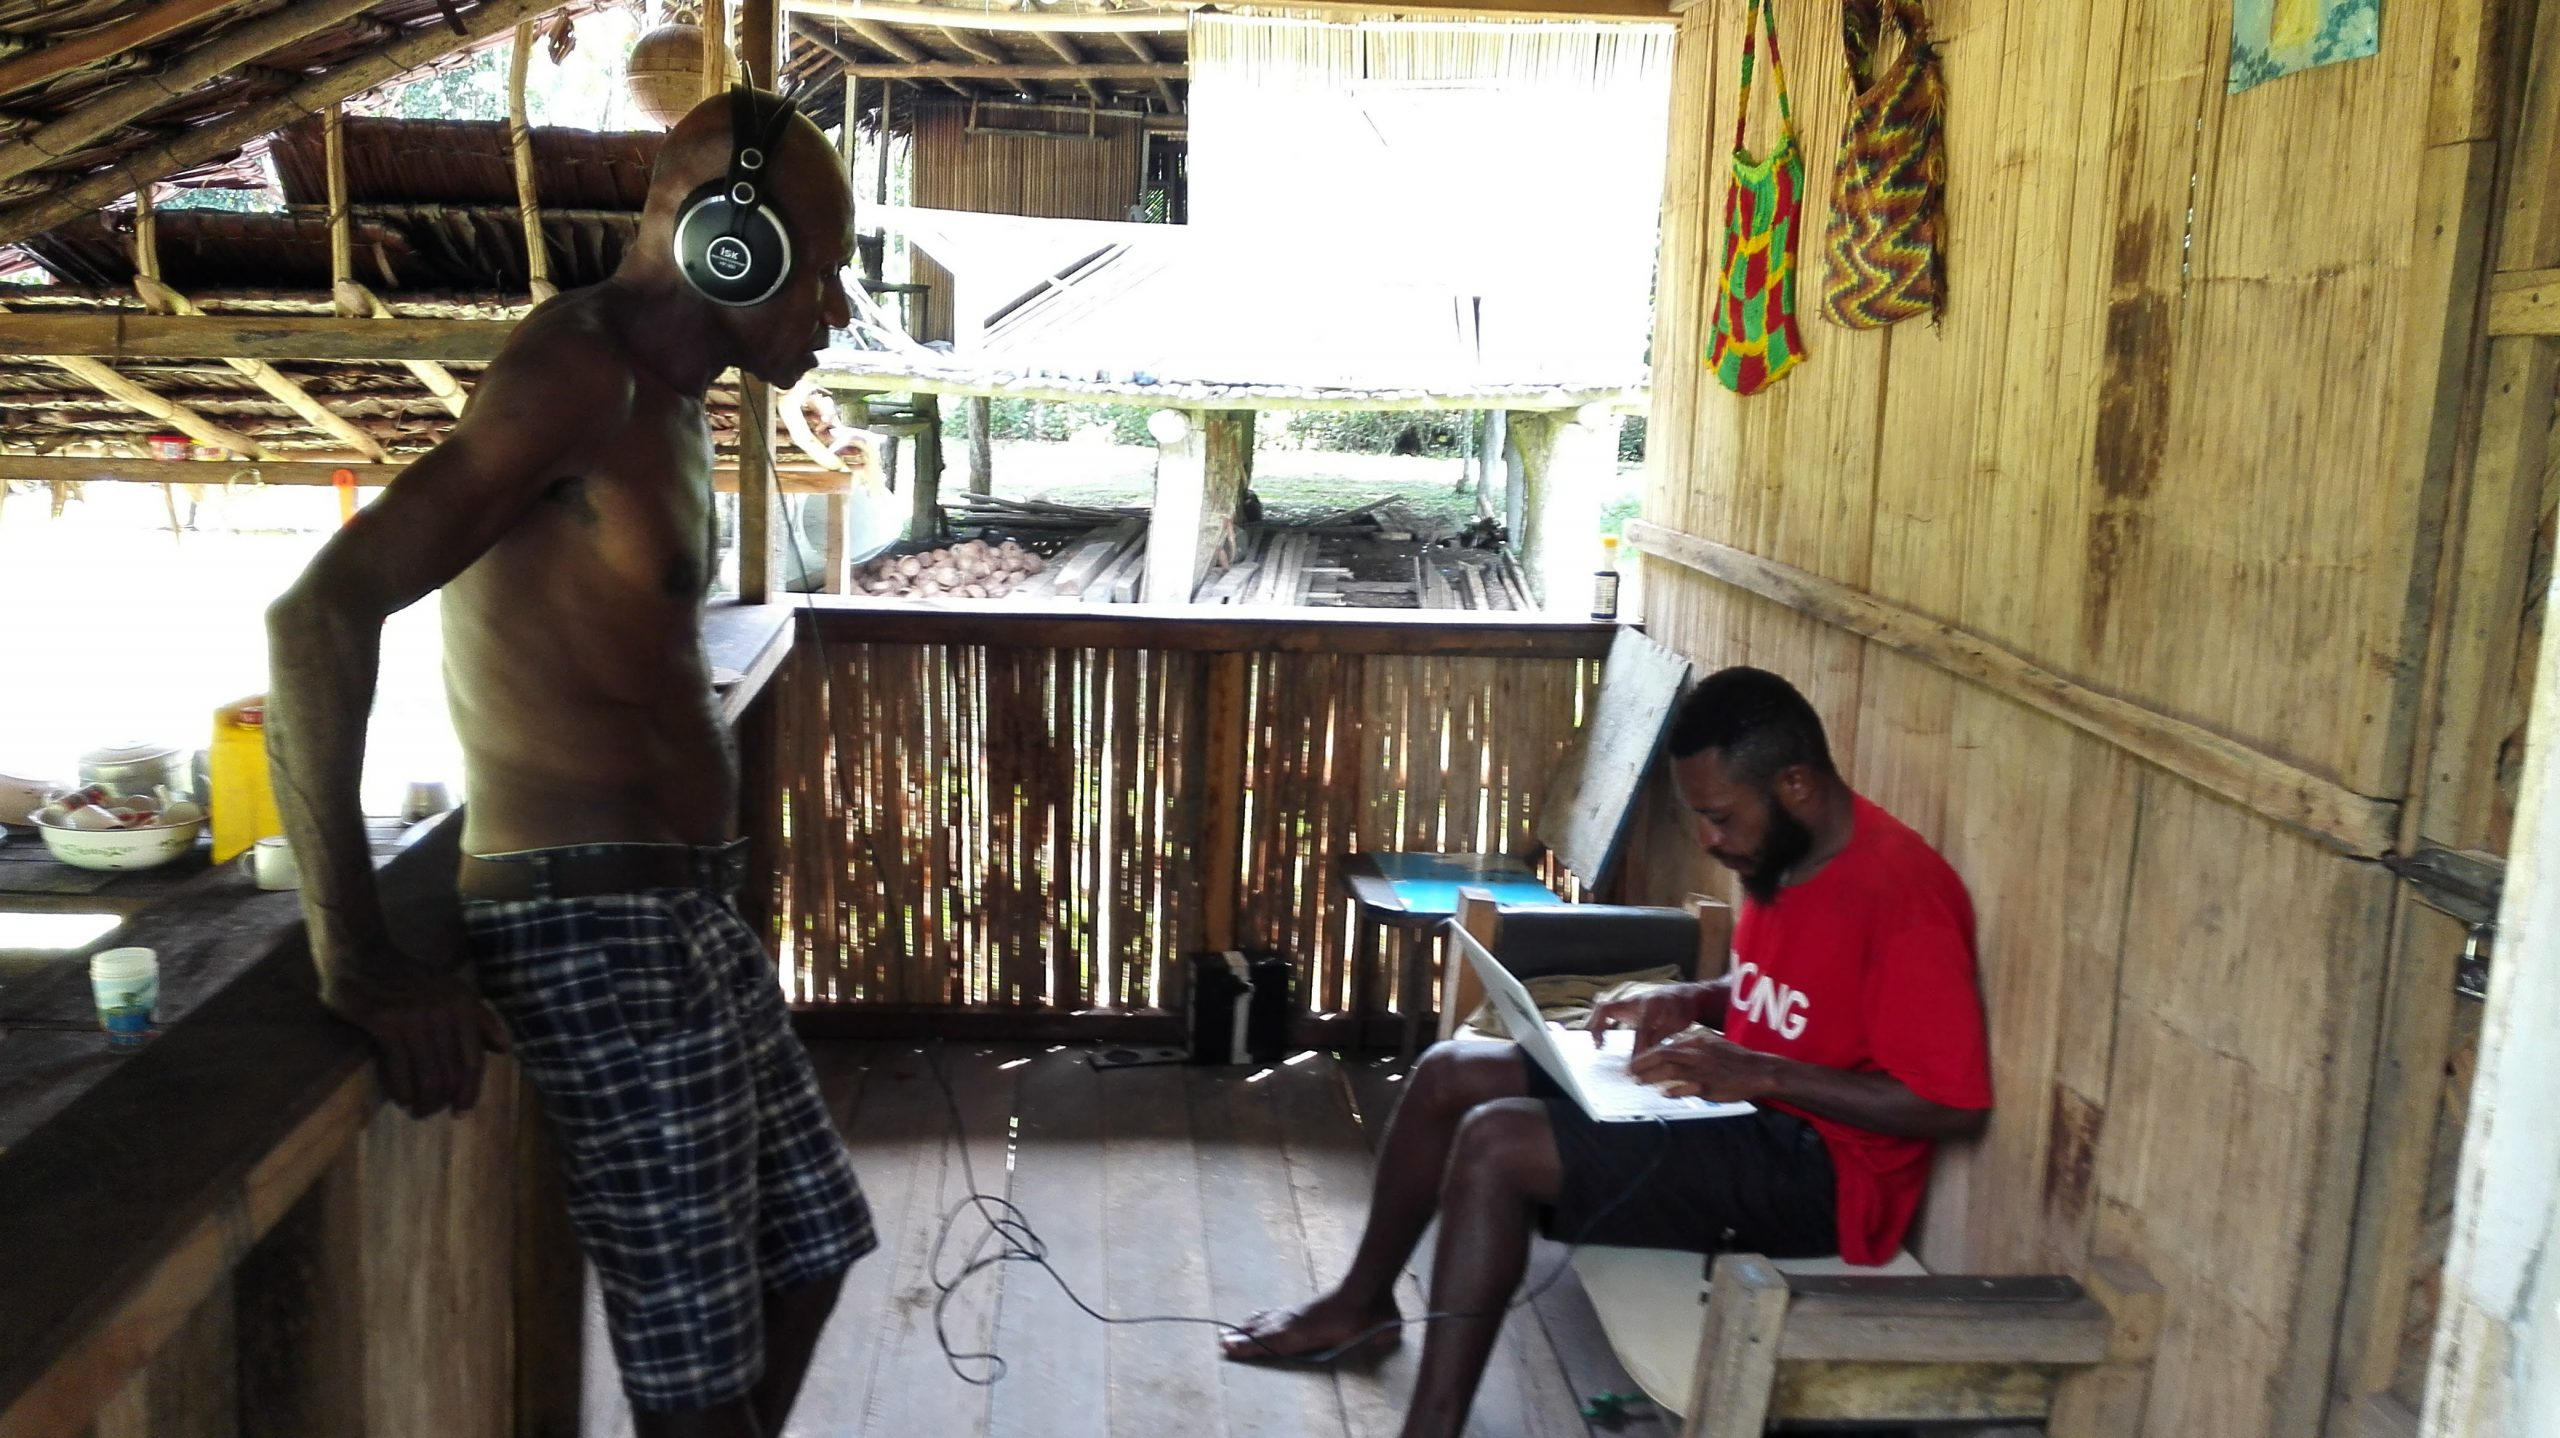 Two men in a traditional Papuan house, one wearing headphones, the other typing on a laptop.